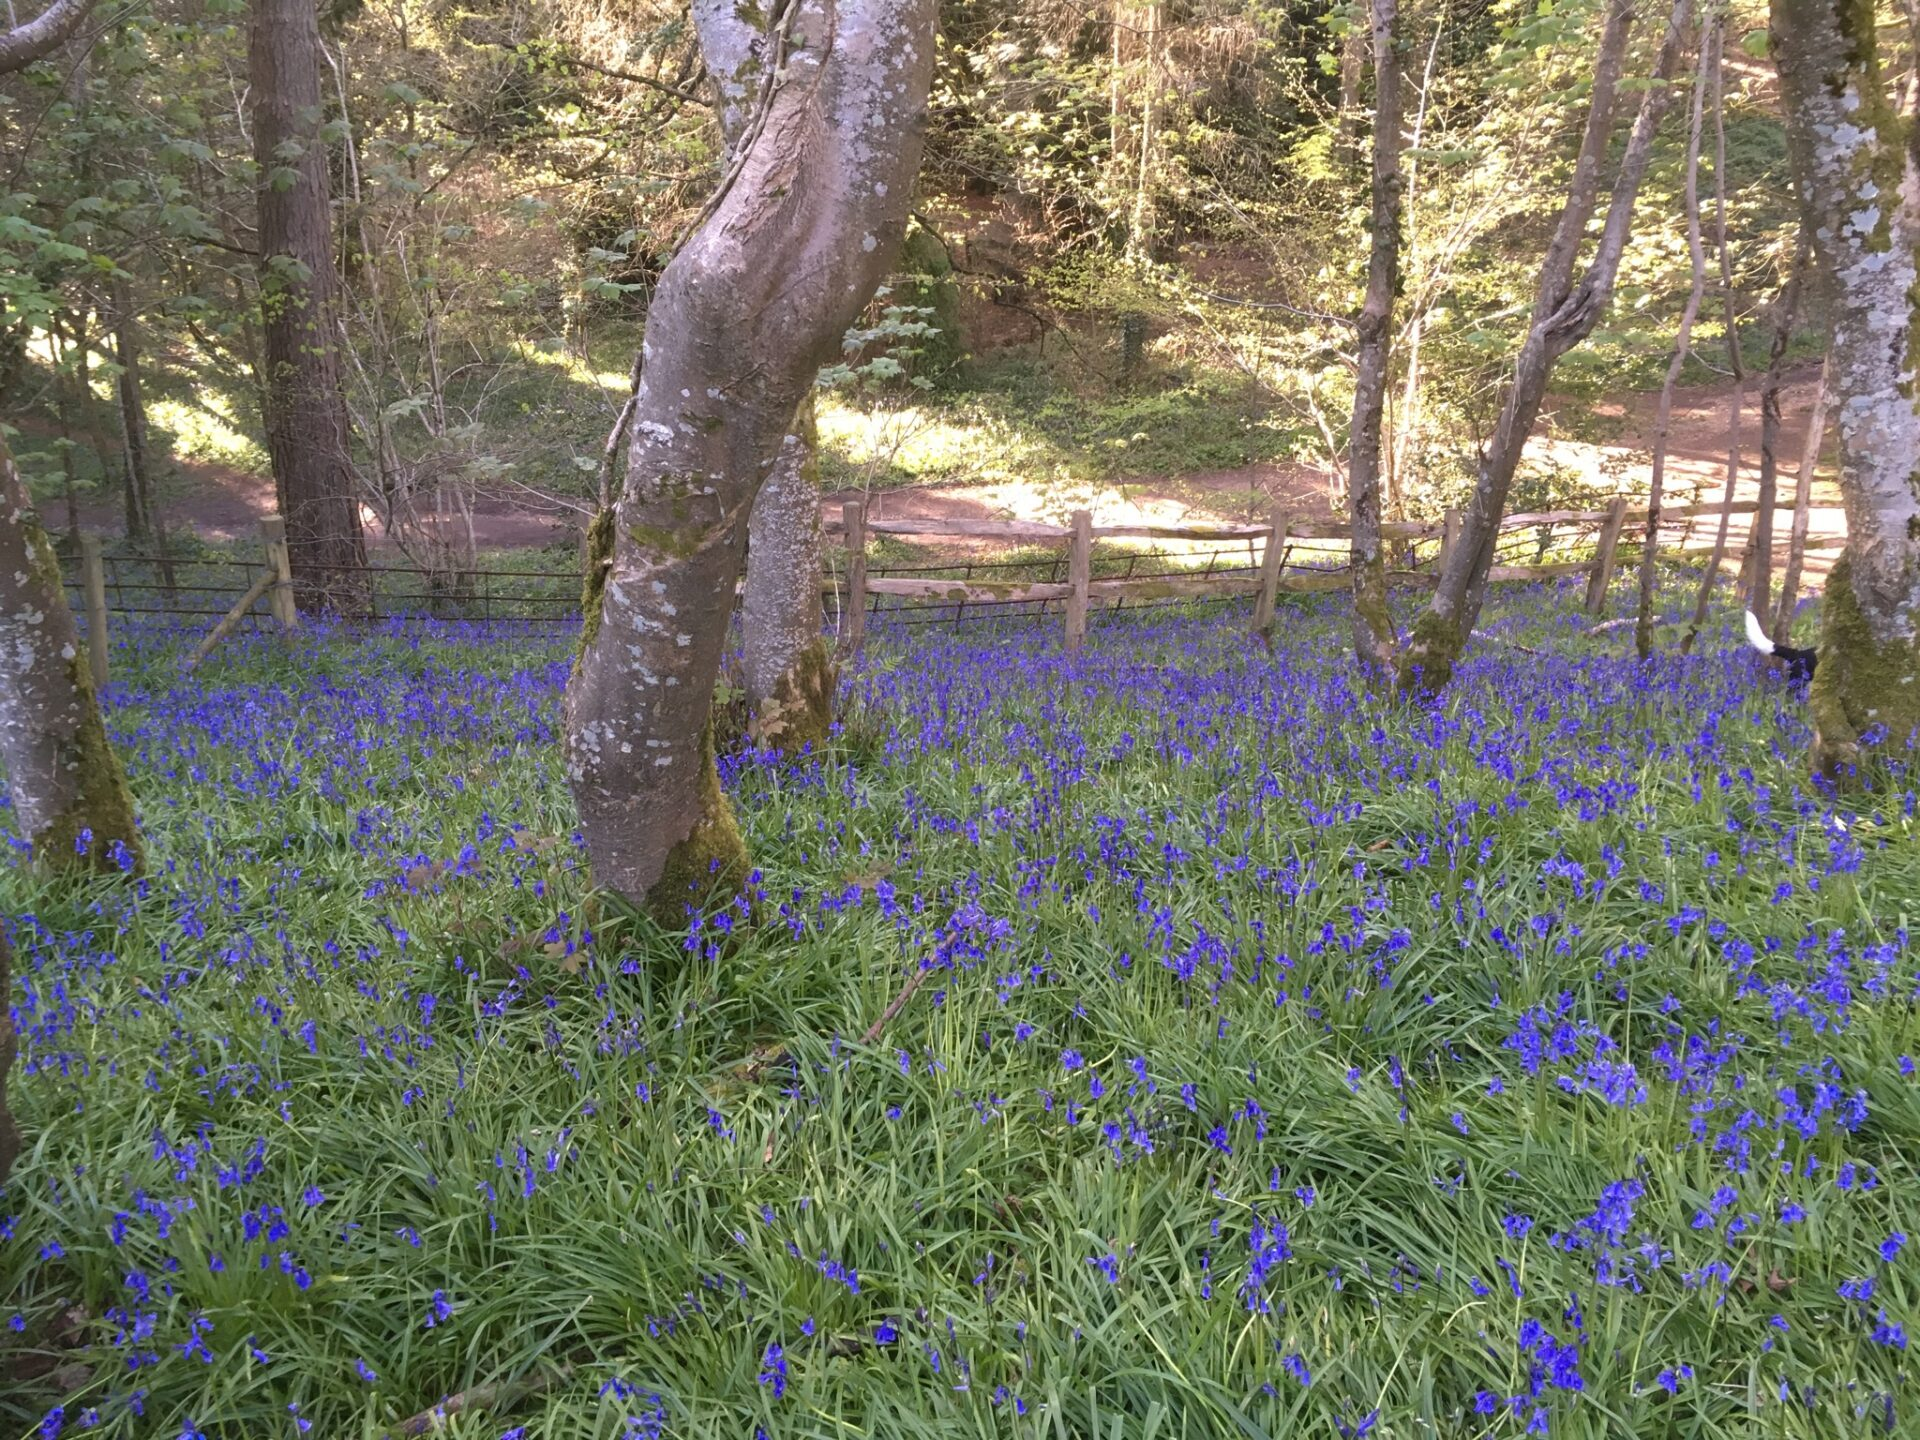 Dorset bluebell wood